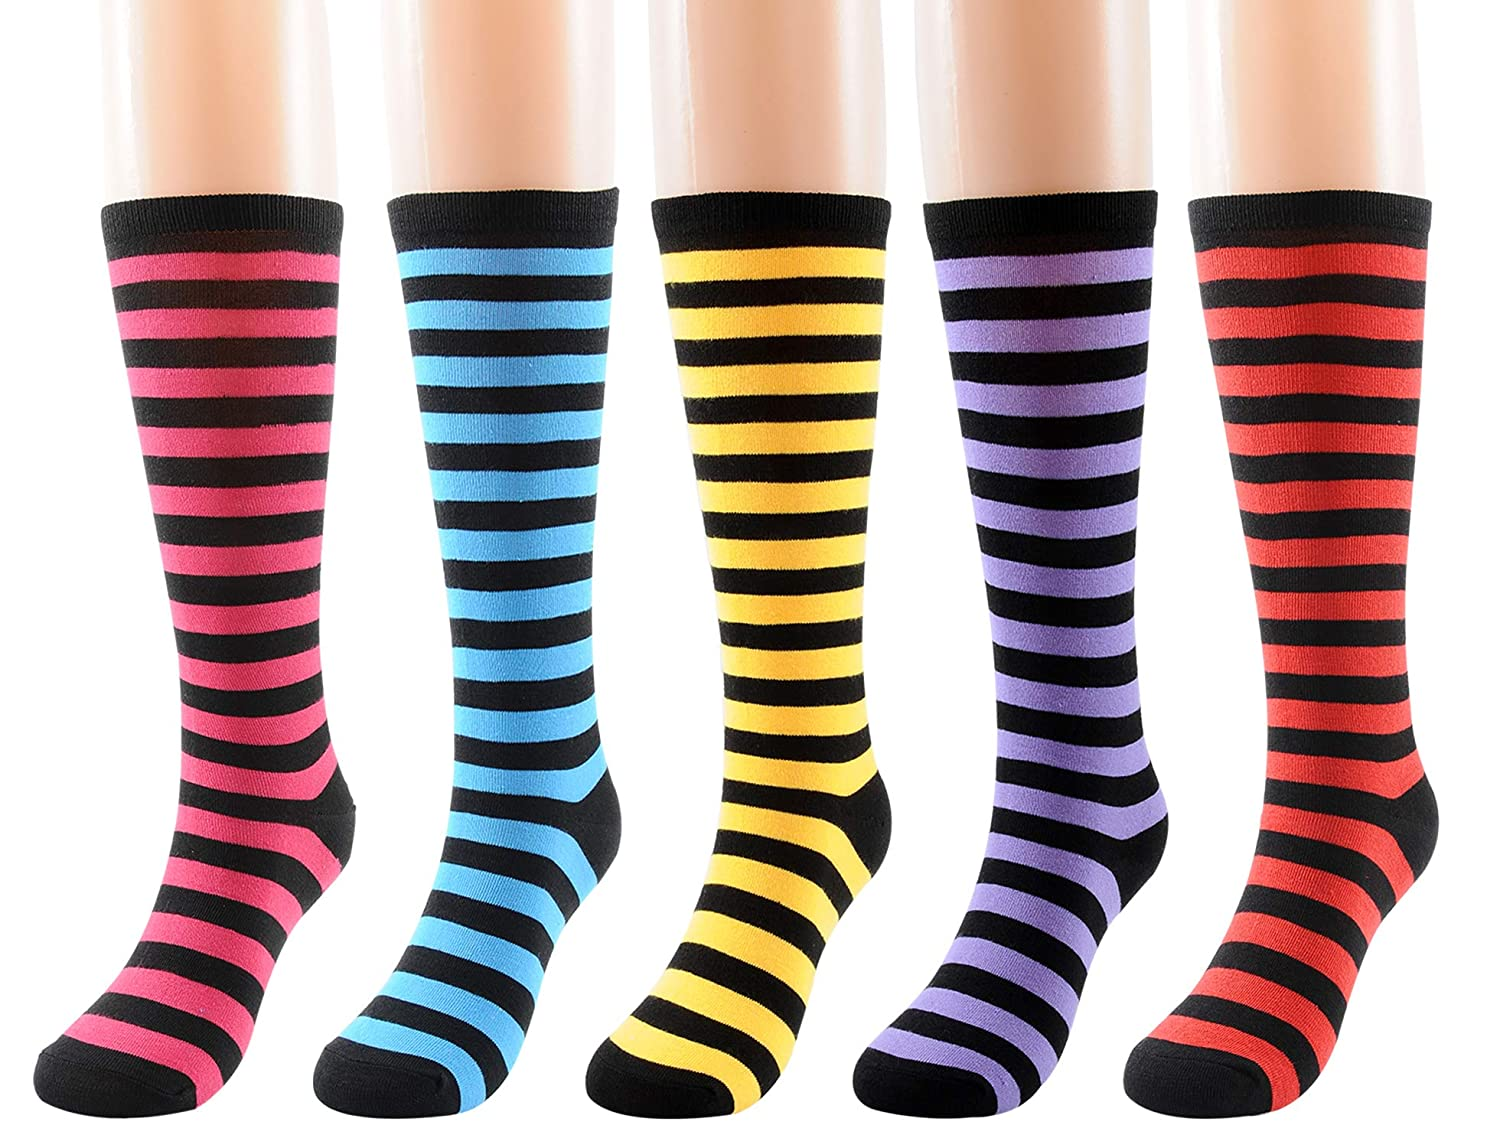 FULIER Winter Women's Knee Hight 5 Pack Colorful Fashion Cotton Dress Crew Socks